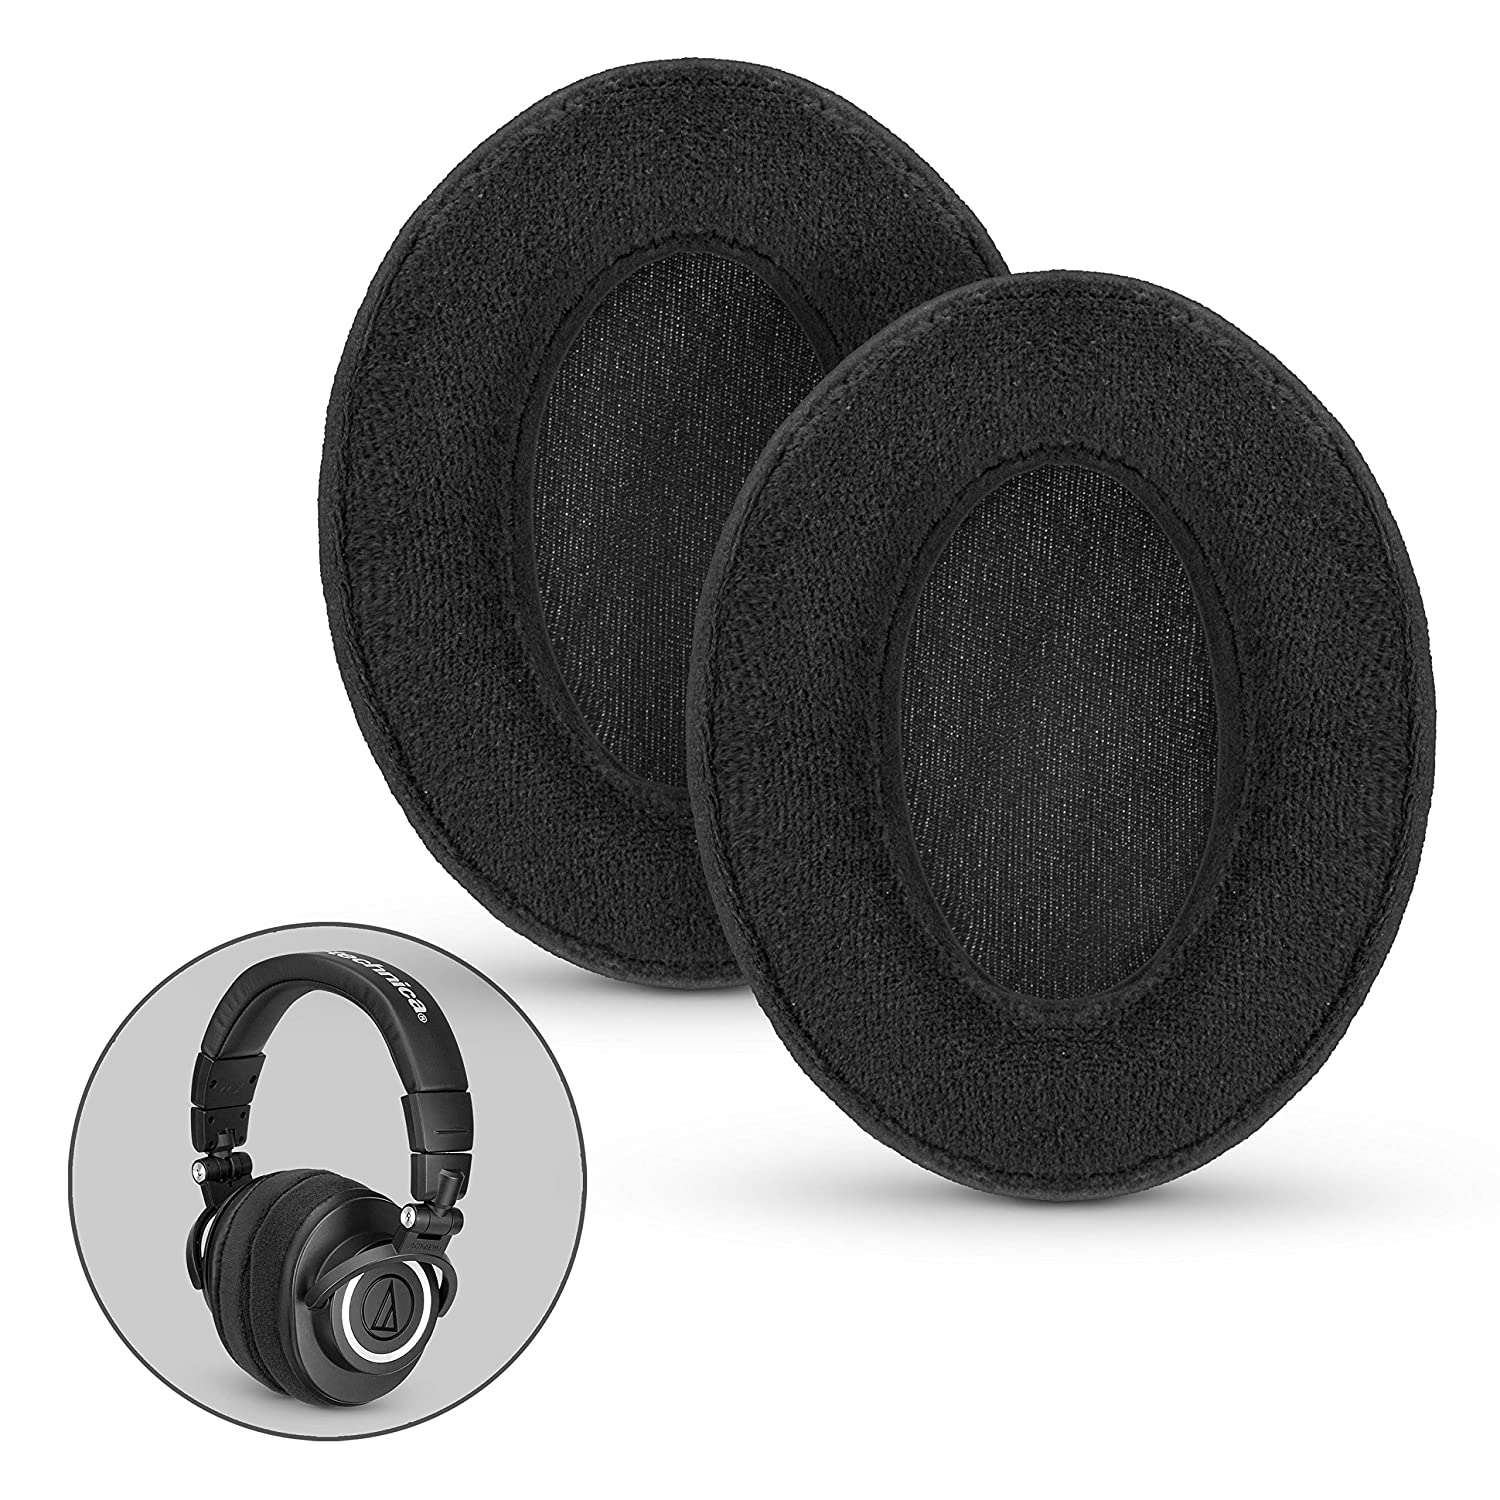 BRAINWAVZ Velor Replacements Ear Pads - for ATH-M50X, SHURE, AKG, HifiMan, ATH, Philips, Fostex Velour Memory Foam Earpads & Many Over The Ear Headphones